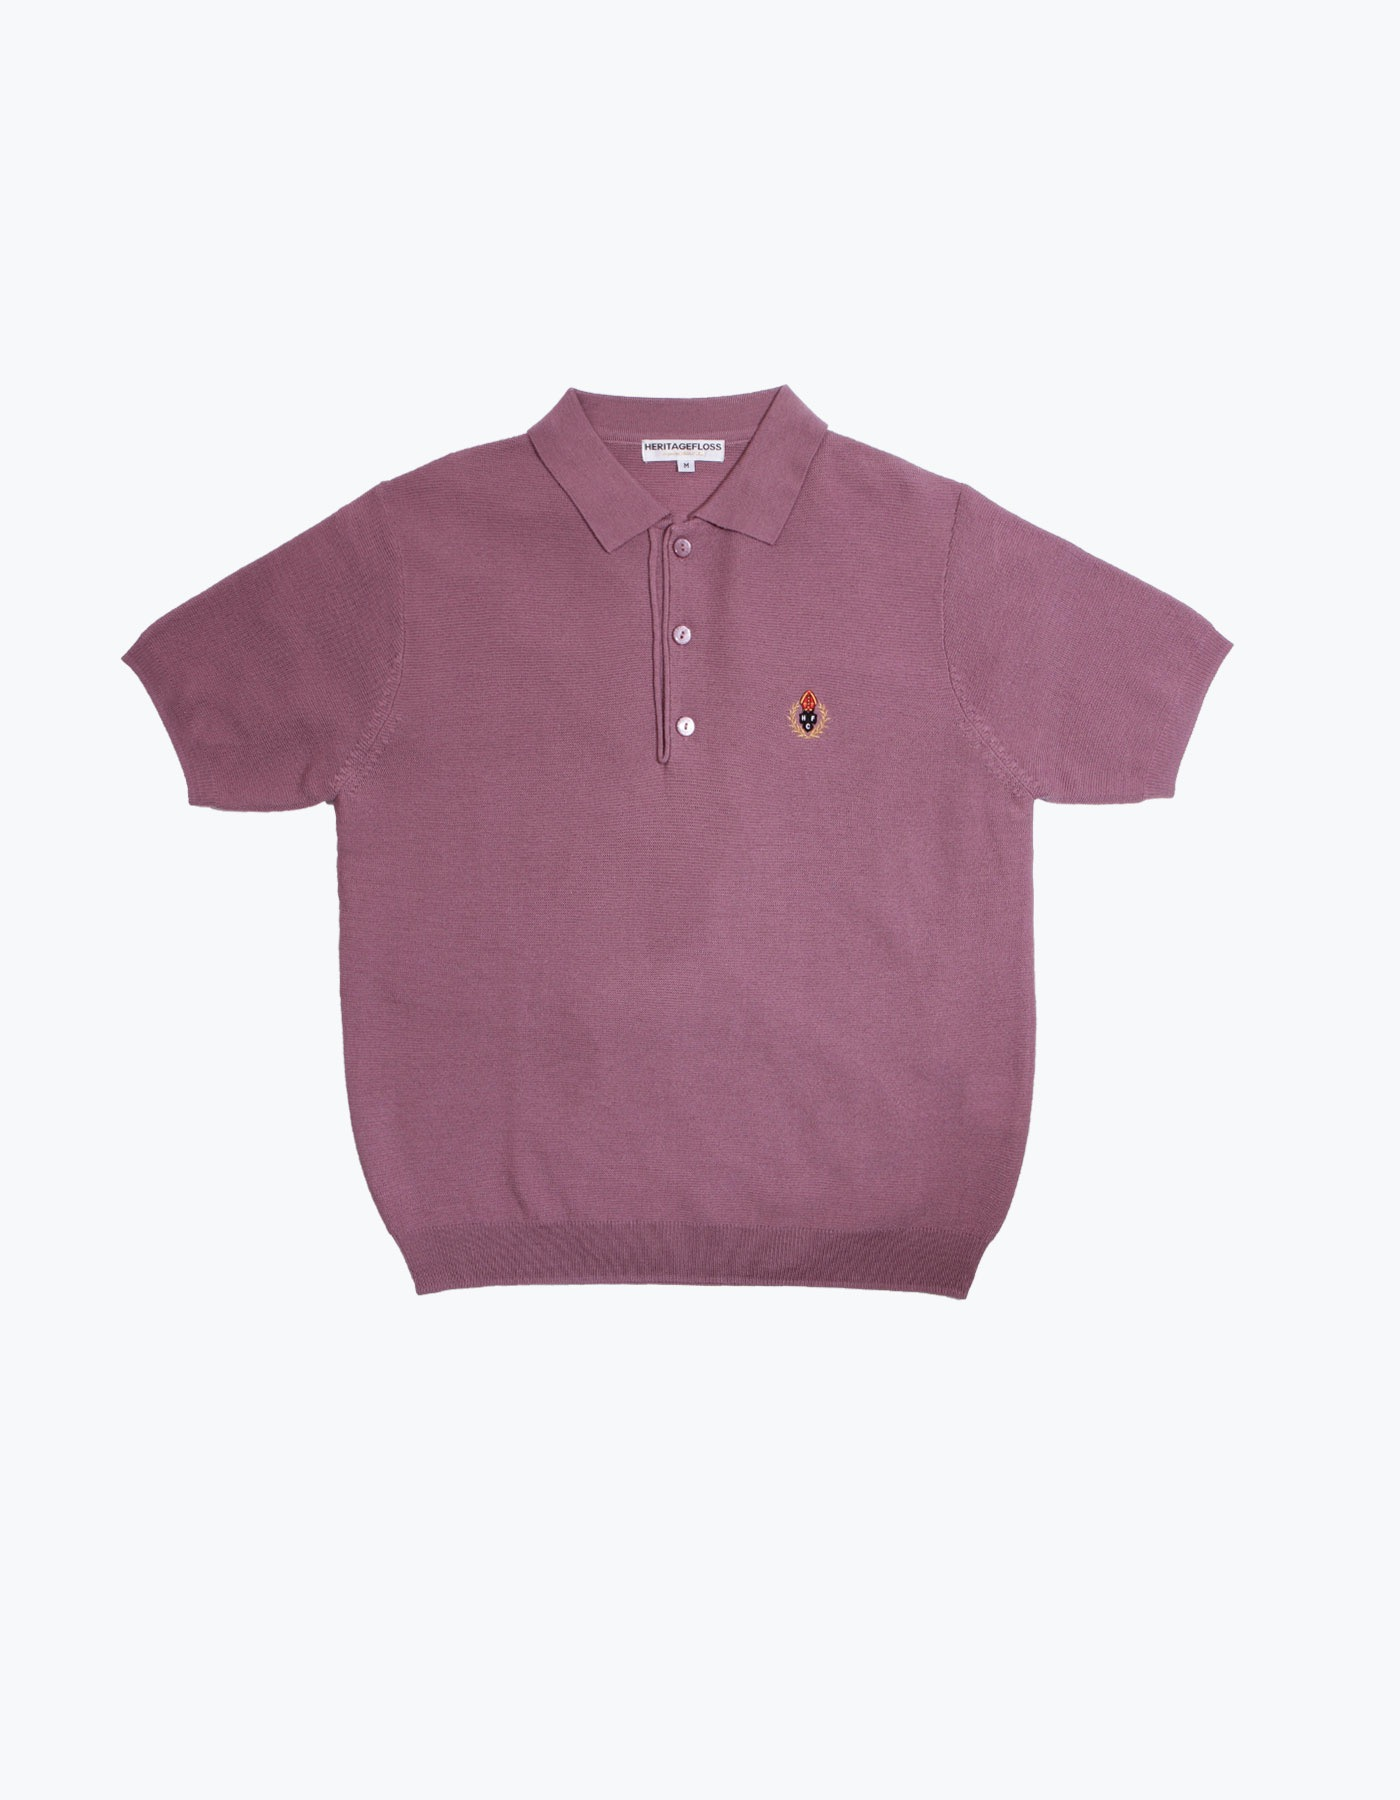 HFC CREST POLO SHIRT / MAROON